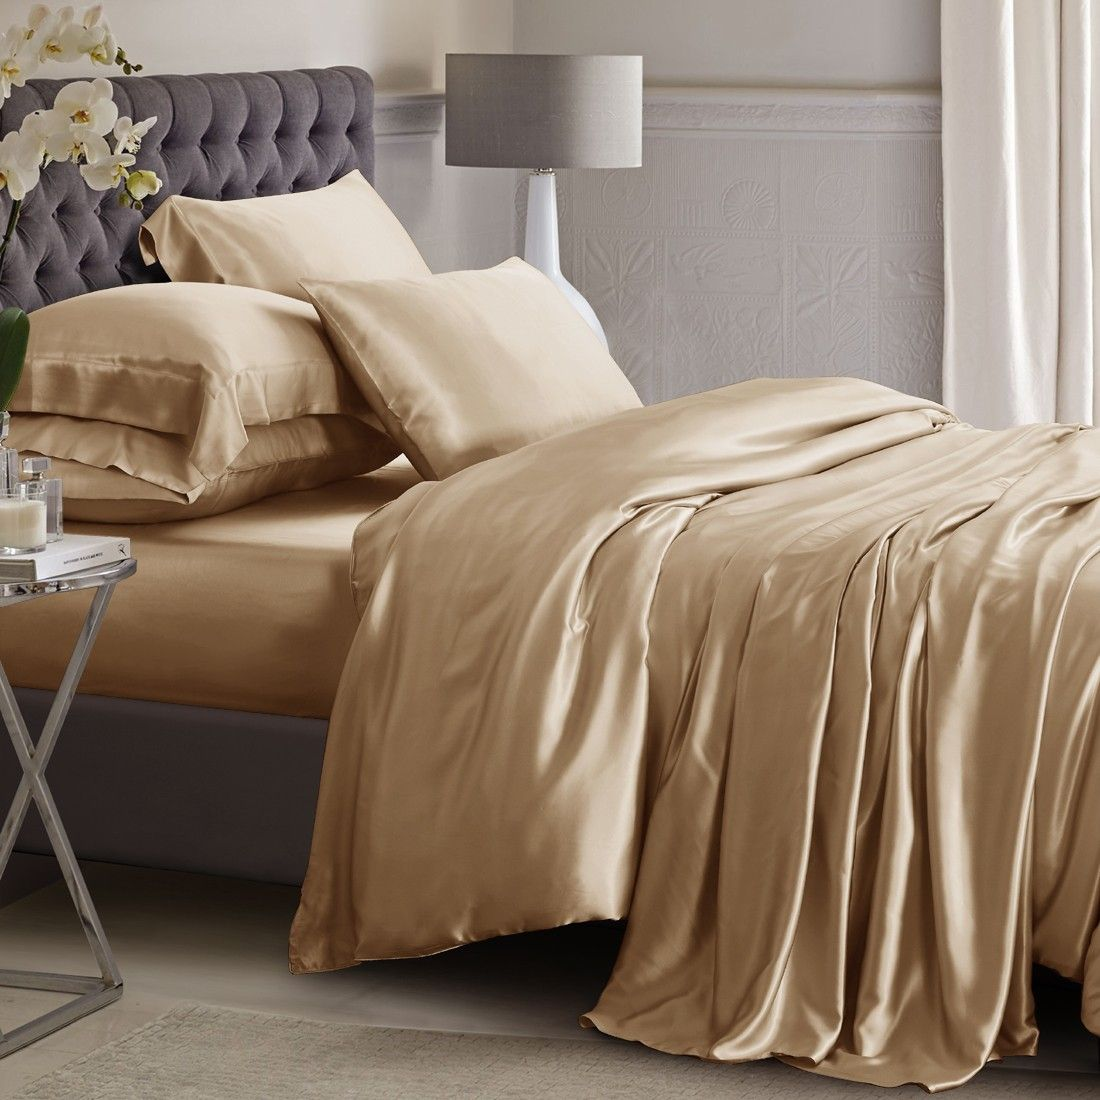 Silk Duvet Cover Silk bed sheets, Bed linens luxury, Bed